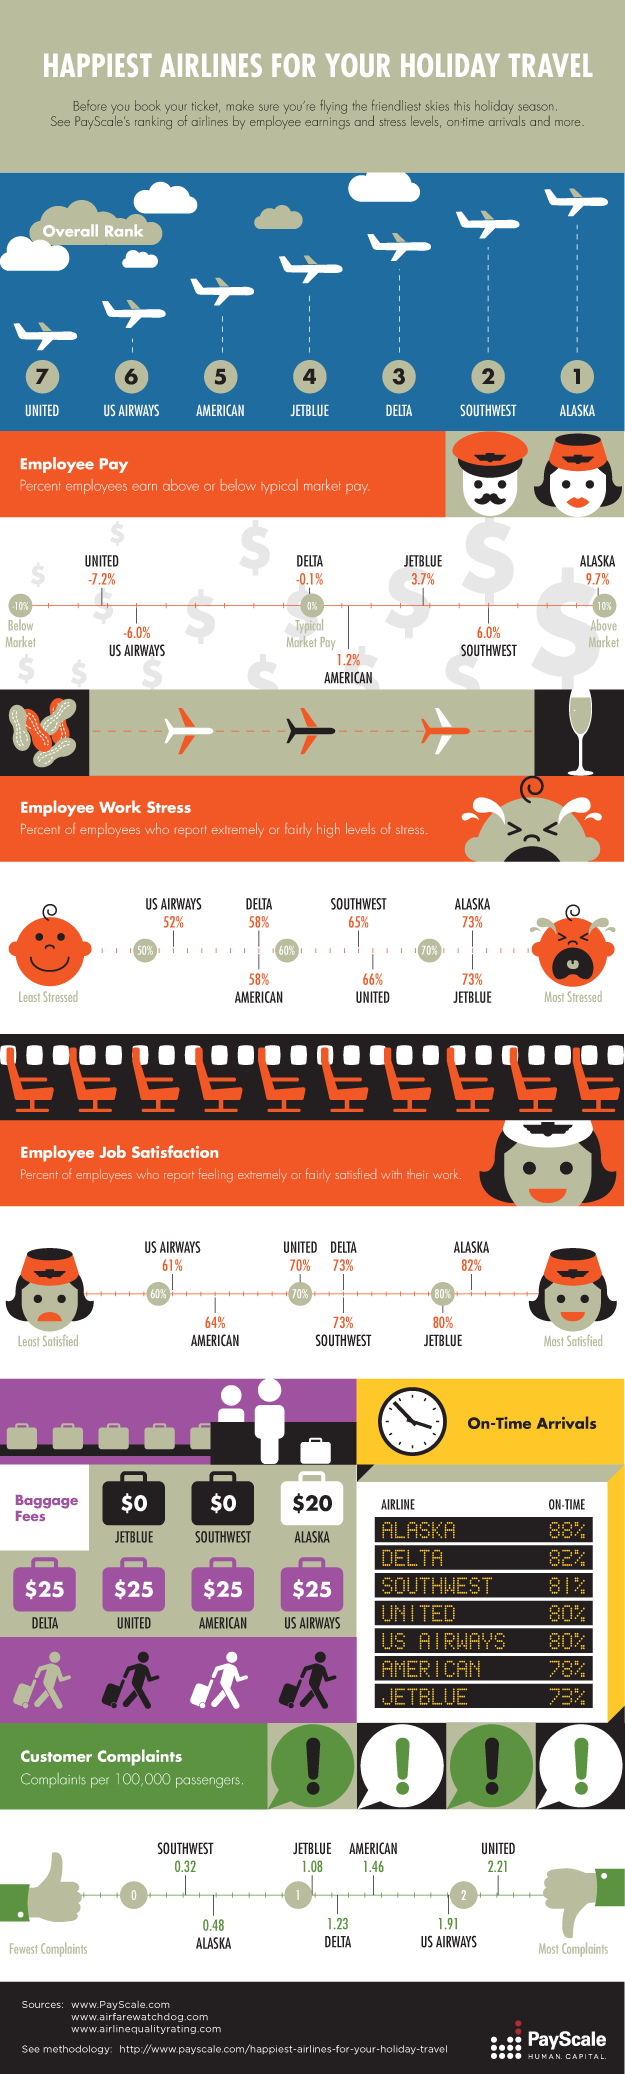 Holiday Airline Travel